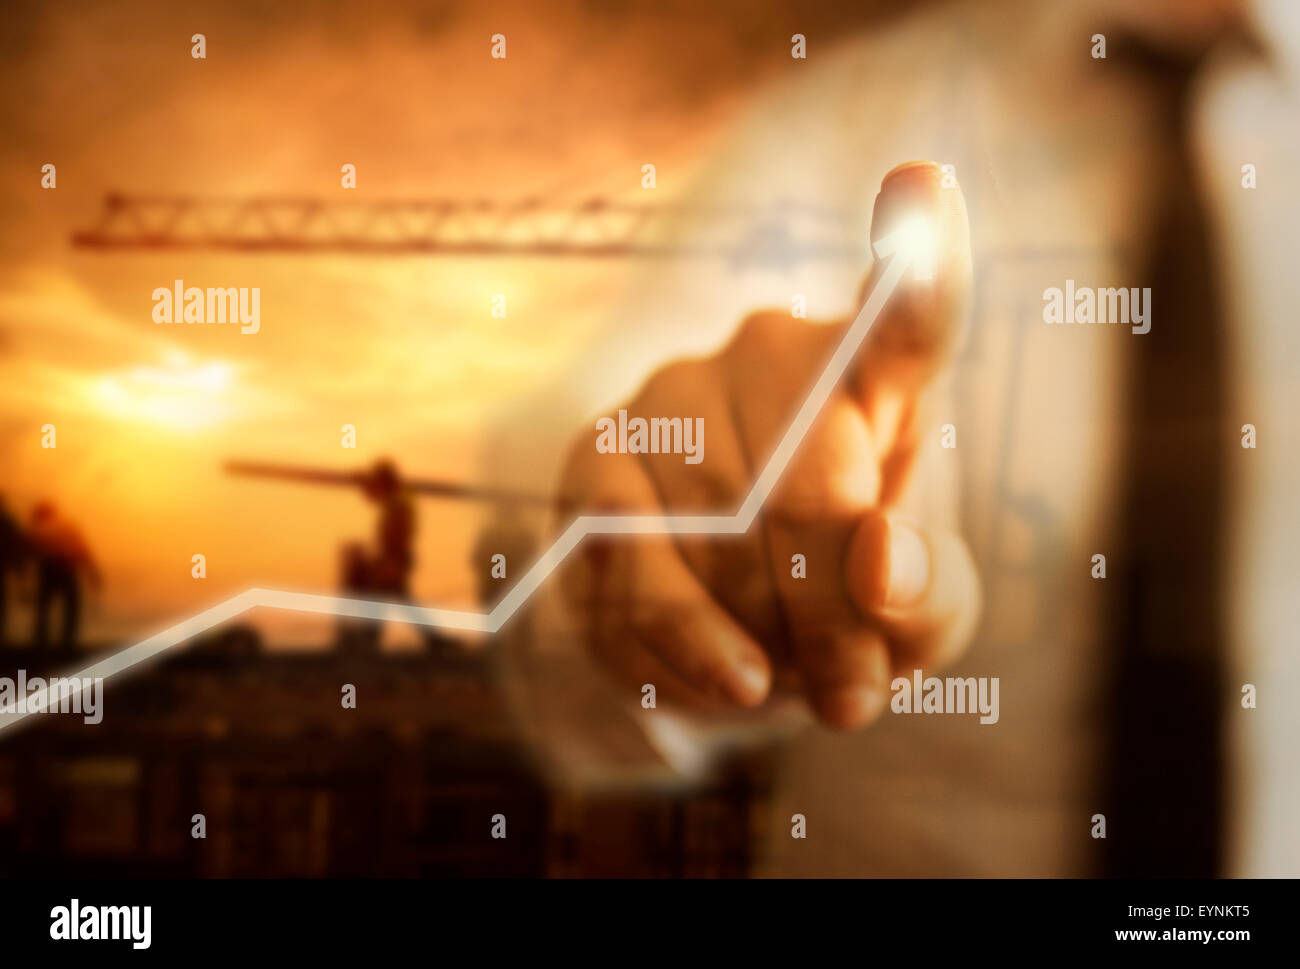 Business Growth Concept - Stock Image